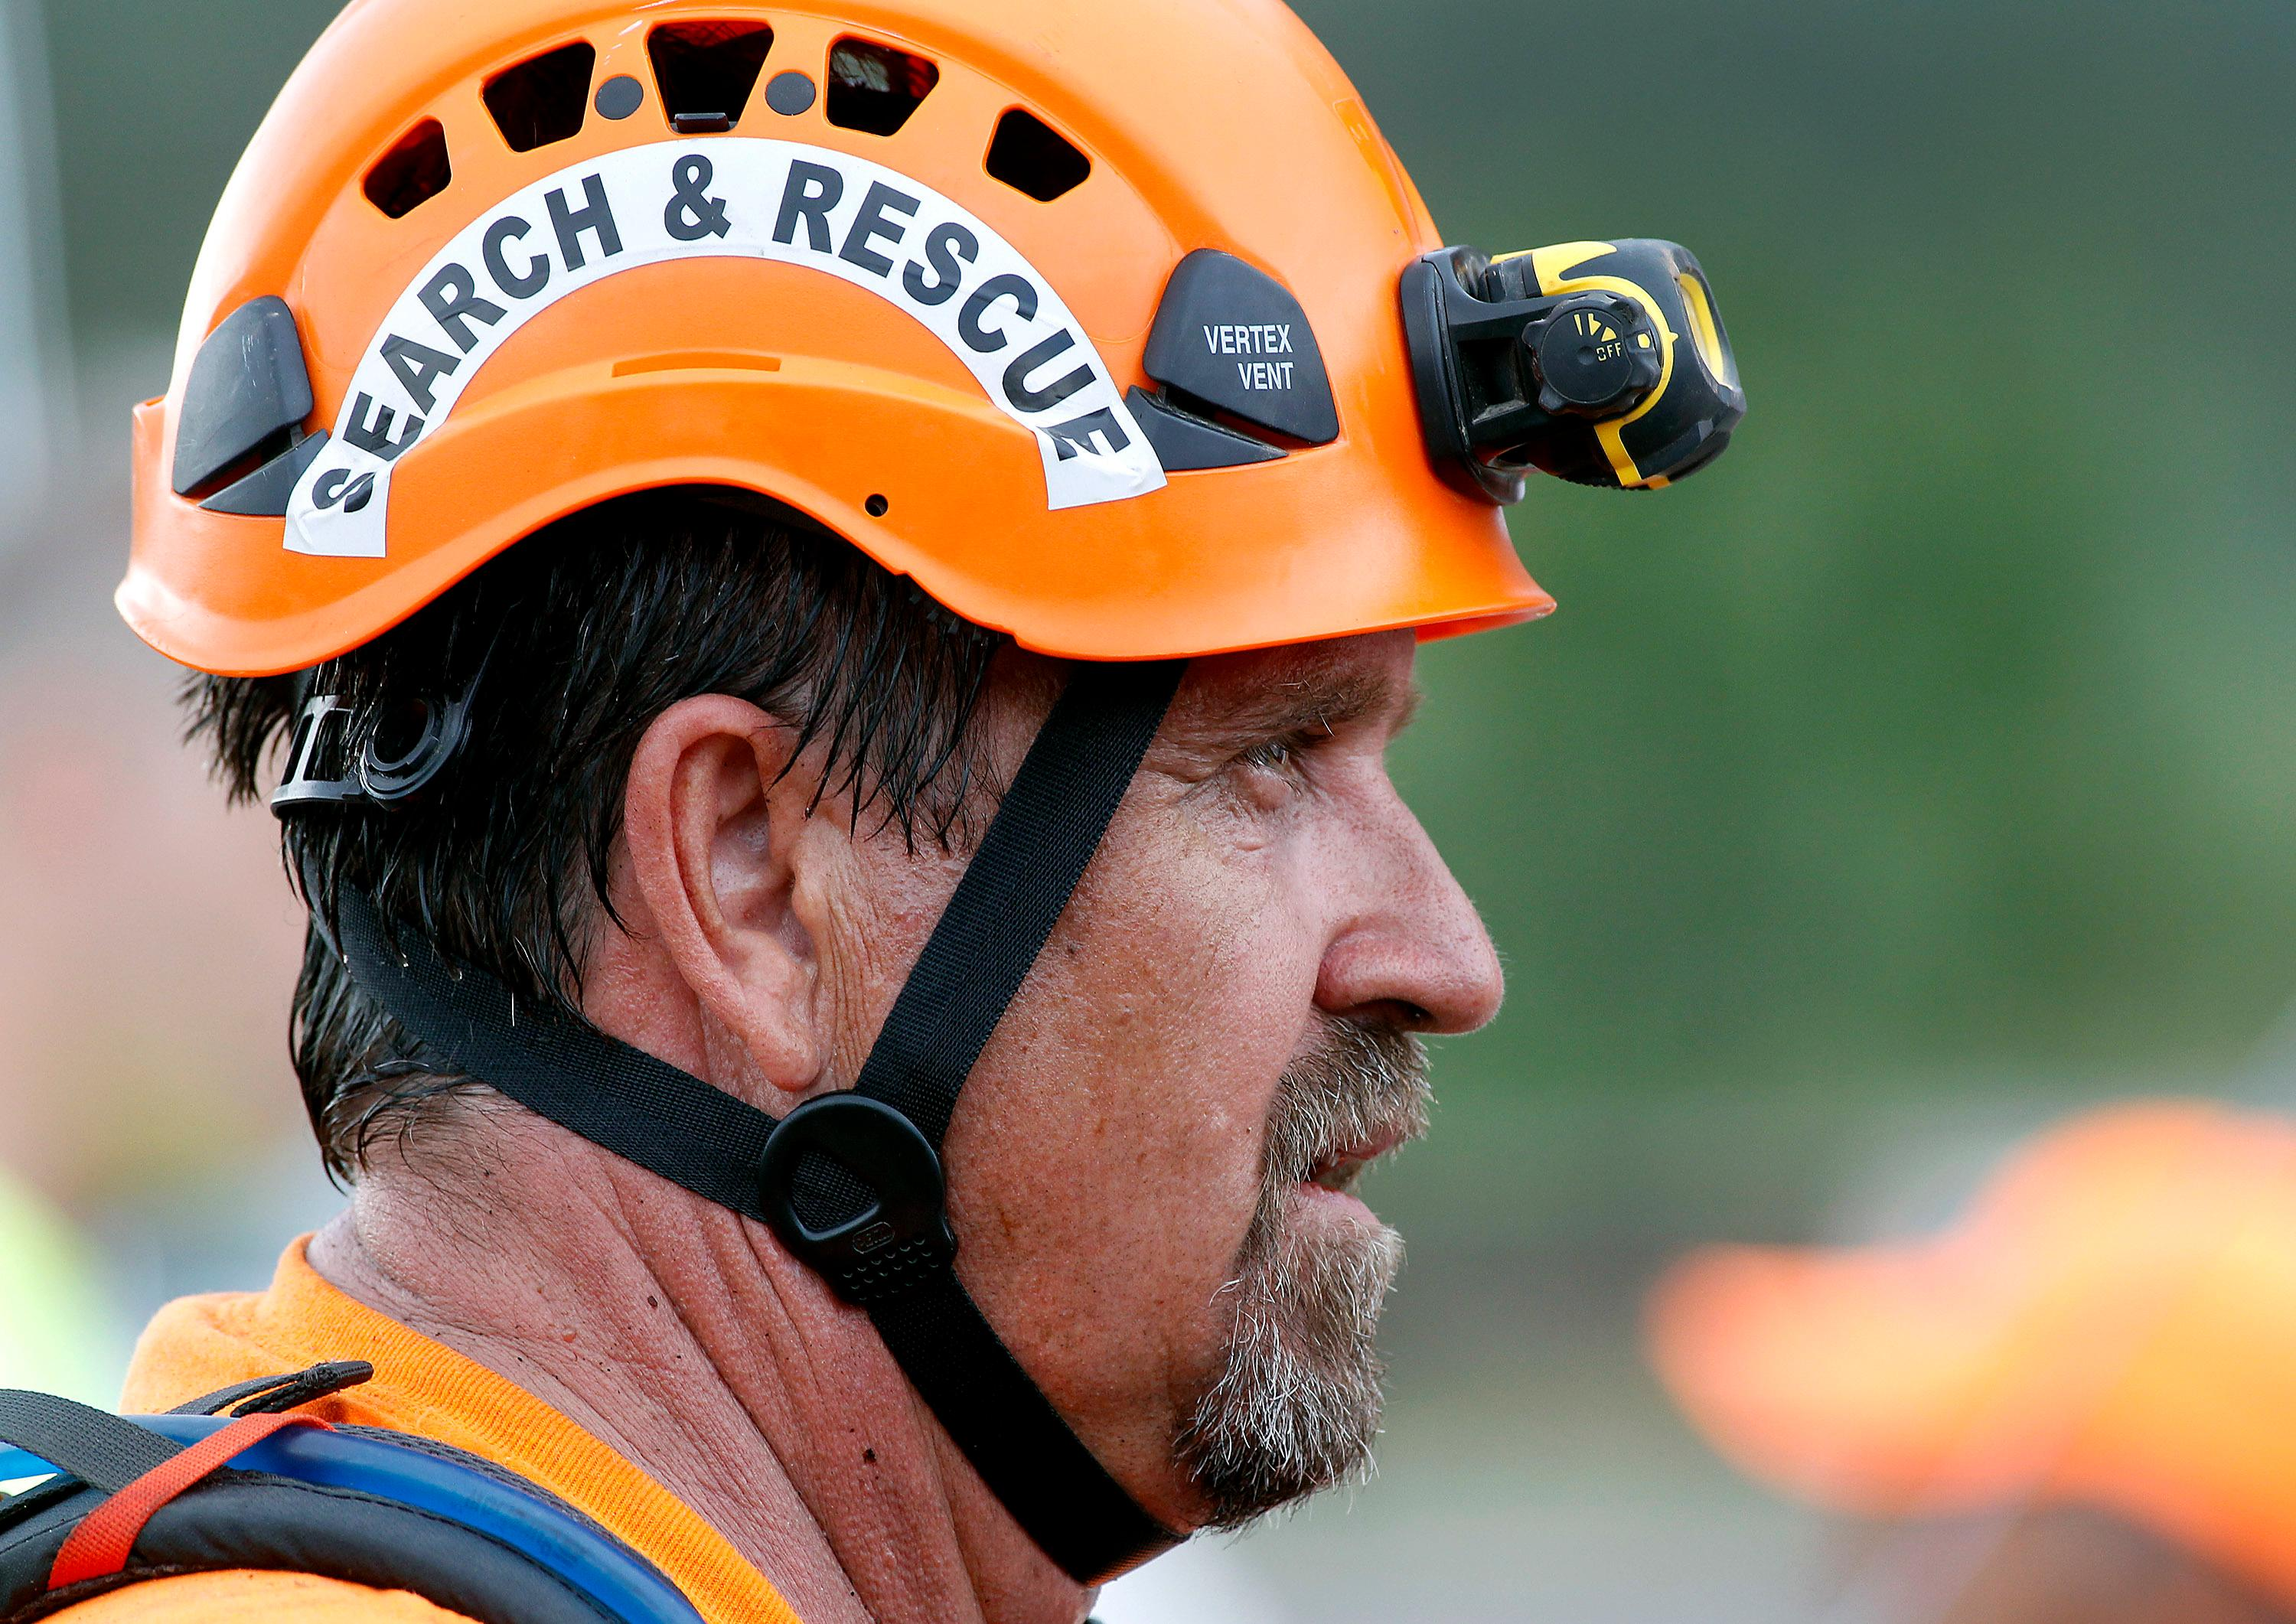 Brad Cole, of the Tonto Rim Search and Rescue, listens during a briefing at the Gila County Sheriff's Office command center during a search operation for victims of a flash flood along the banks of the East Verde River, Sunday, July 16, 2017, in Payson, Ariz. Search and rescue crews, including 40 people on foot and others in a helicopter, have recovered bodies of children and adults, some as far as two miles down the river after Saturday's flash flooding poured over a popular swimming area inside the Tonto National Forest in central Arizona. (AP Photo/Ralph Freso)